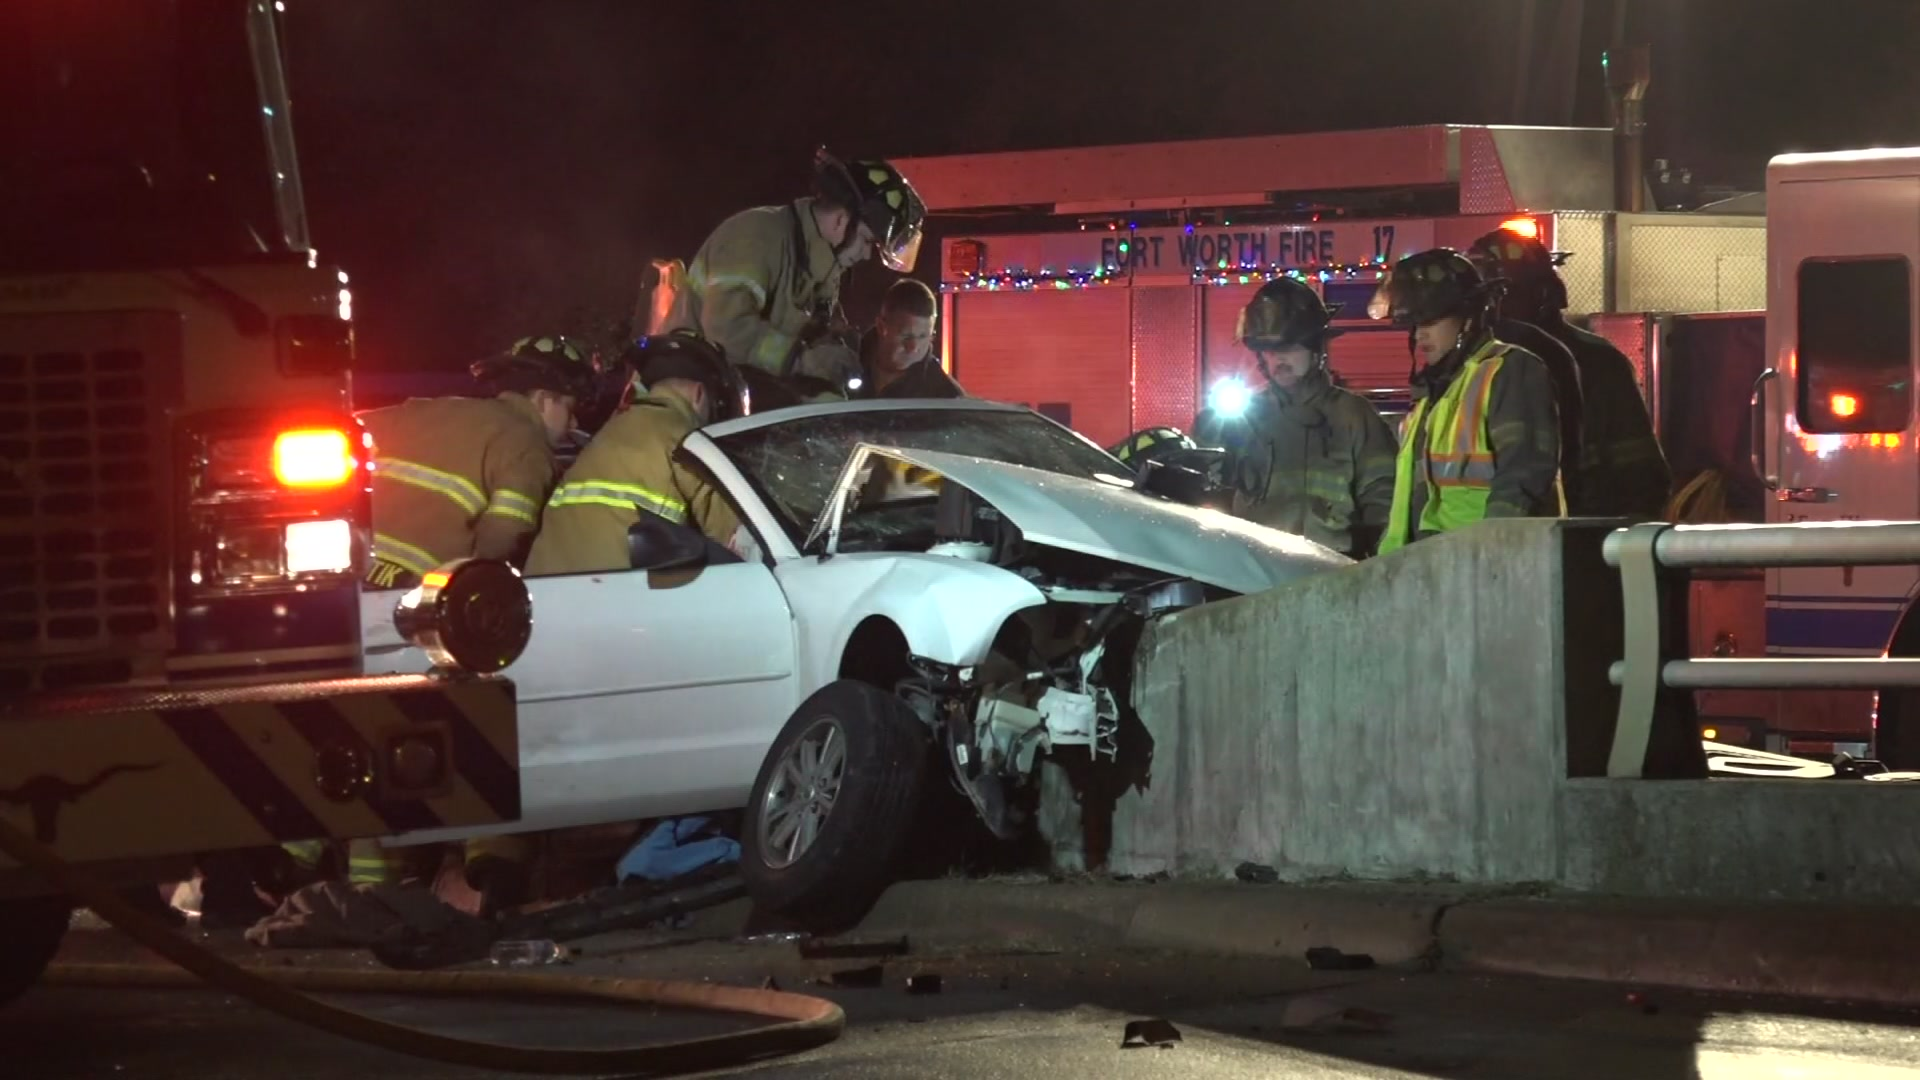 mustang crashes into concrete barrier, 3 hurt - dallas news - newslocker